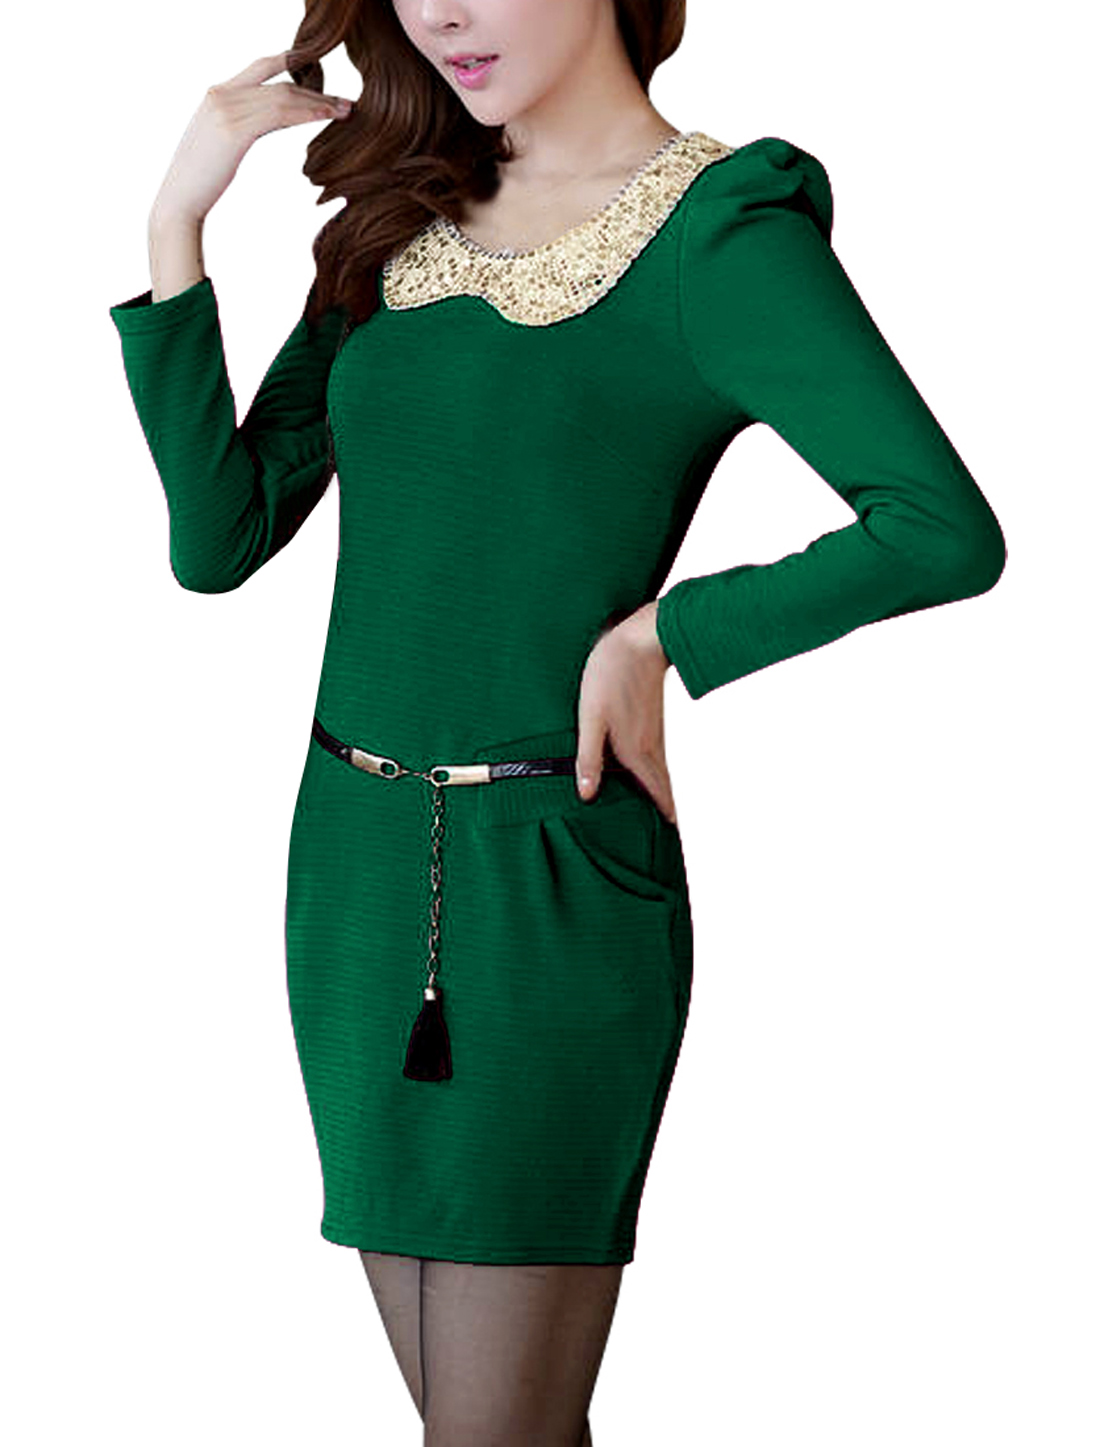 Ladies Long Sleeve Paillettes Decor Green Knit Pencil Dress XS